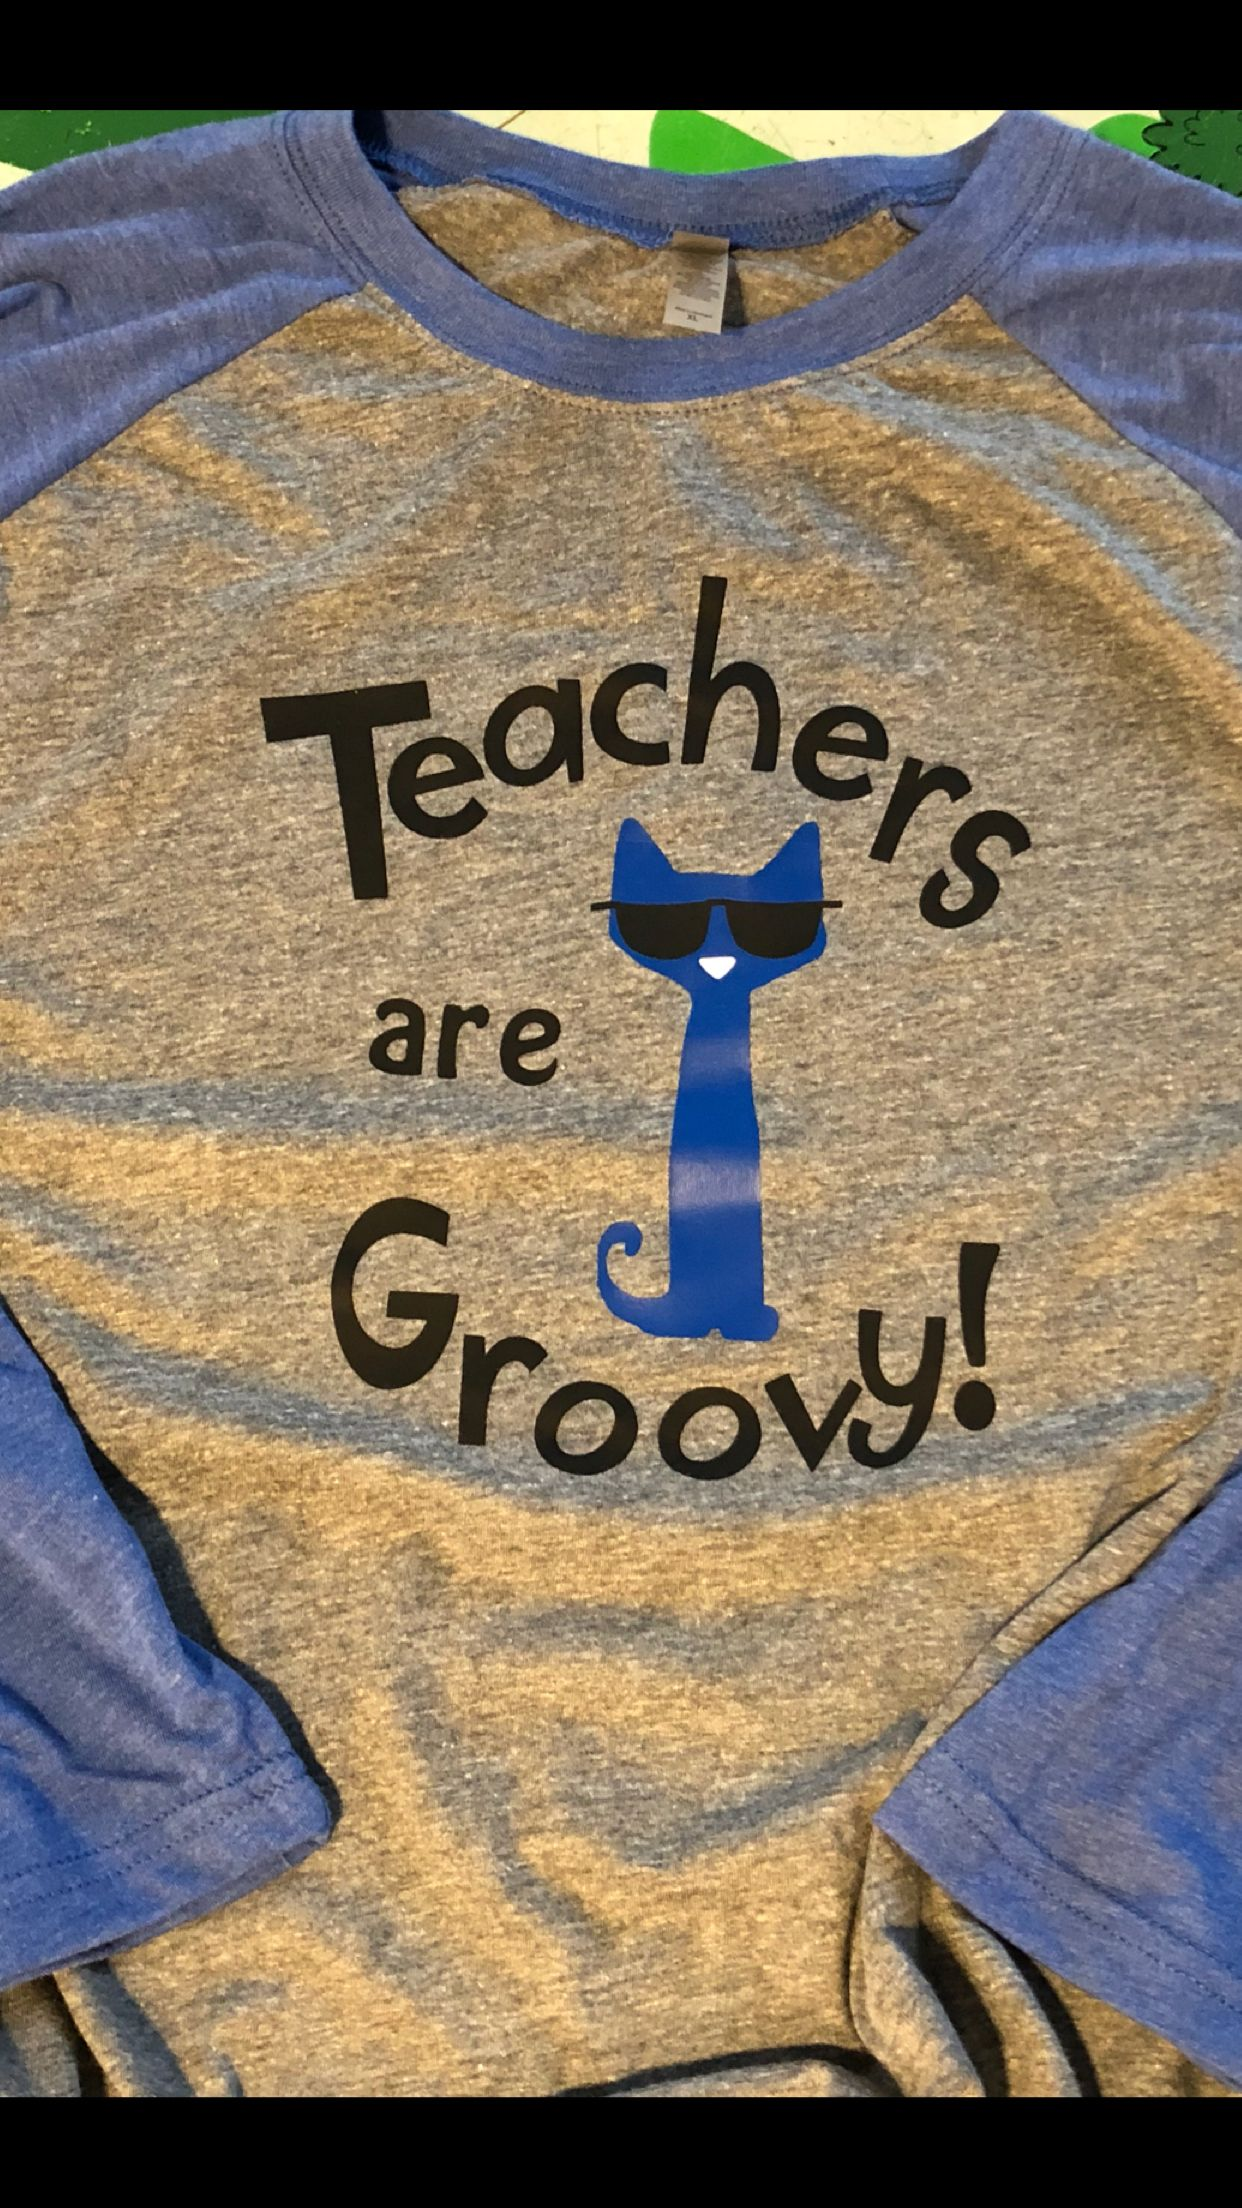 """bffe67c86e1d7 Pete the Cat, """"Teachers are Groovy"""" custom T Shirt on Etsy at ..."""